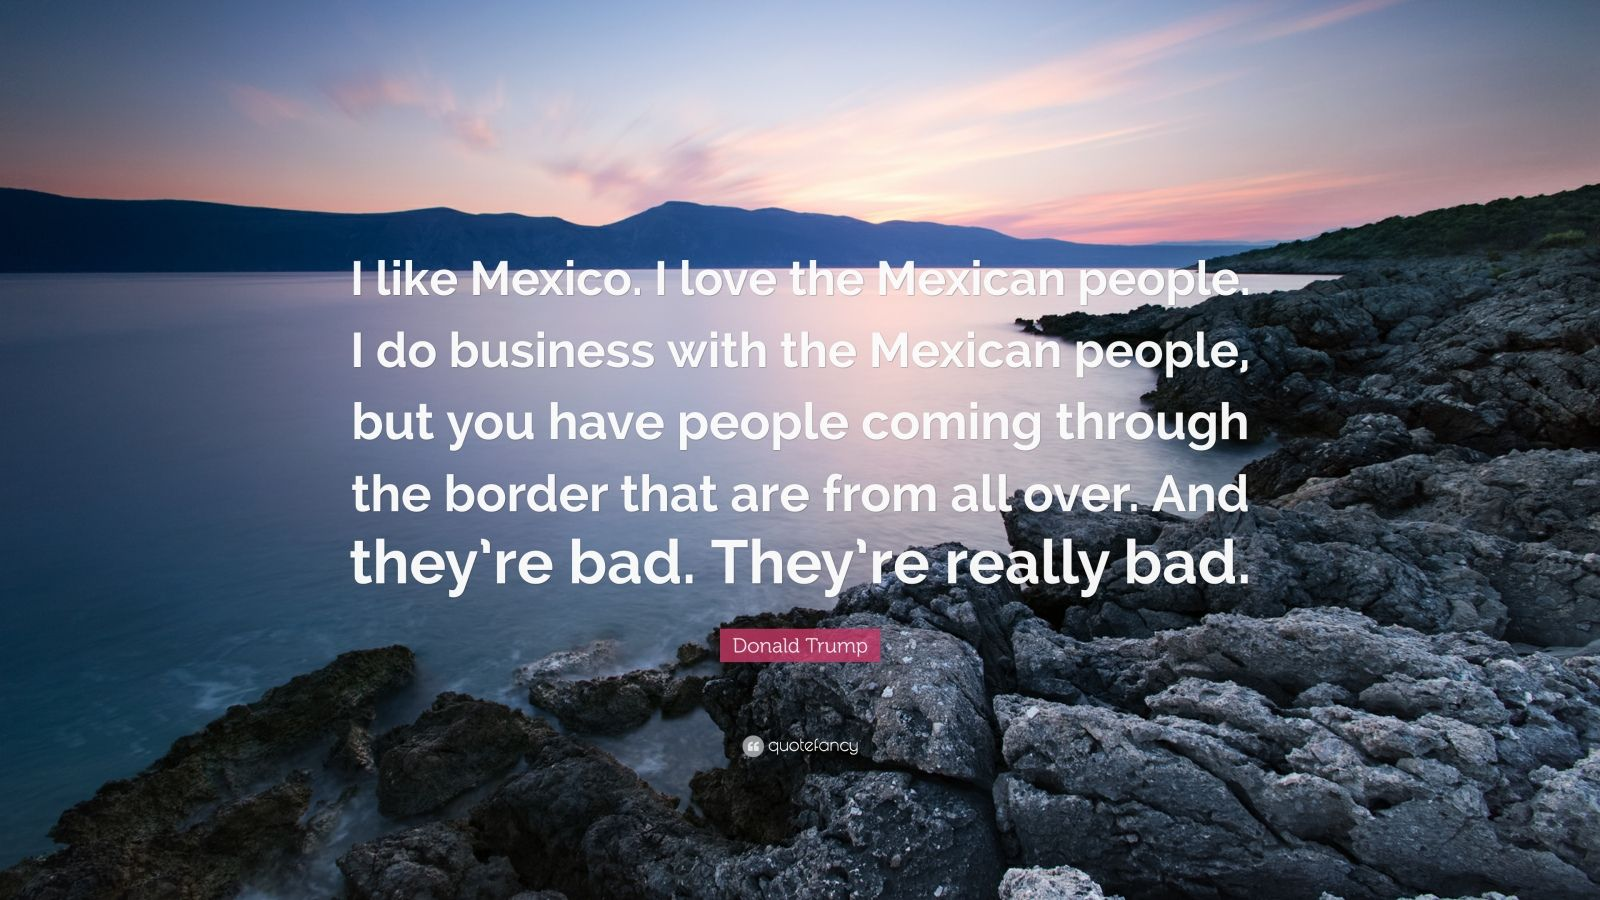 "Donald Trump Quote: ""I like Mexico. I love the Mexican people. I do business with the Mexican people, but you have people coming through the border that are from all over. And they're bad. They're really bad."""